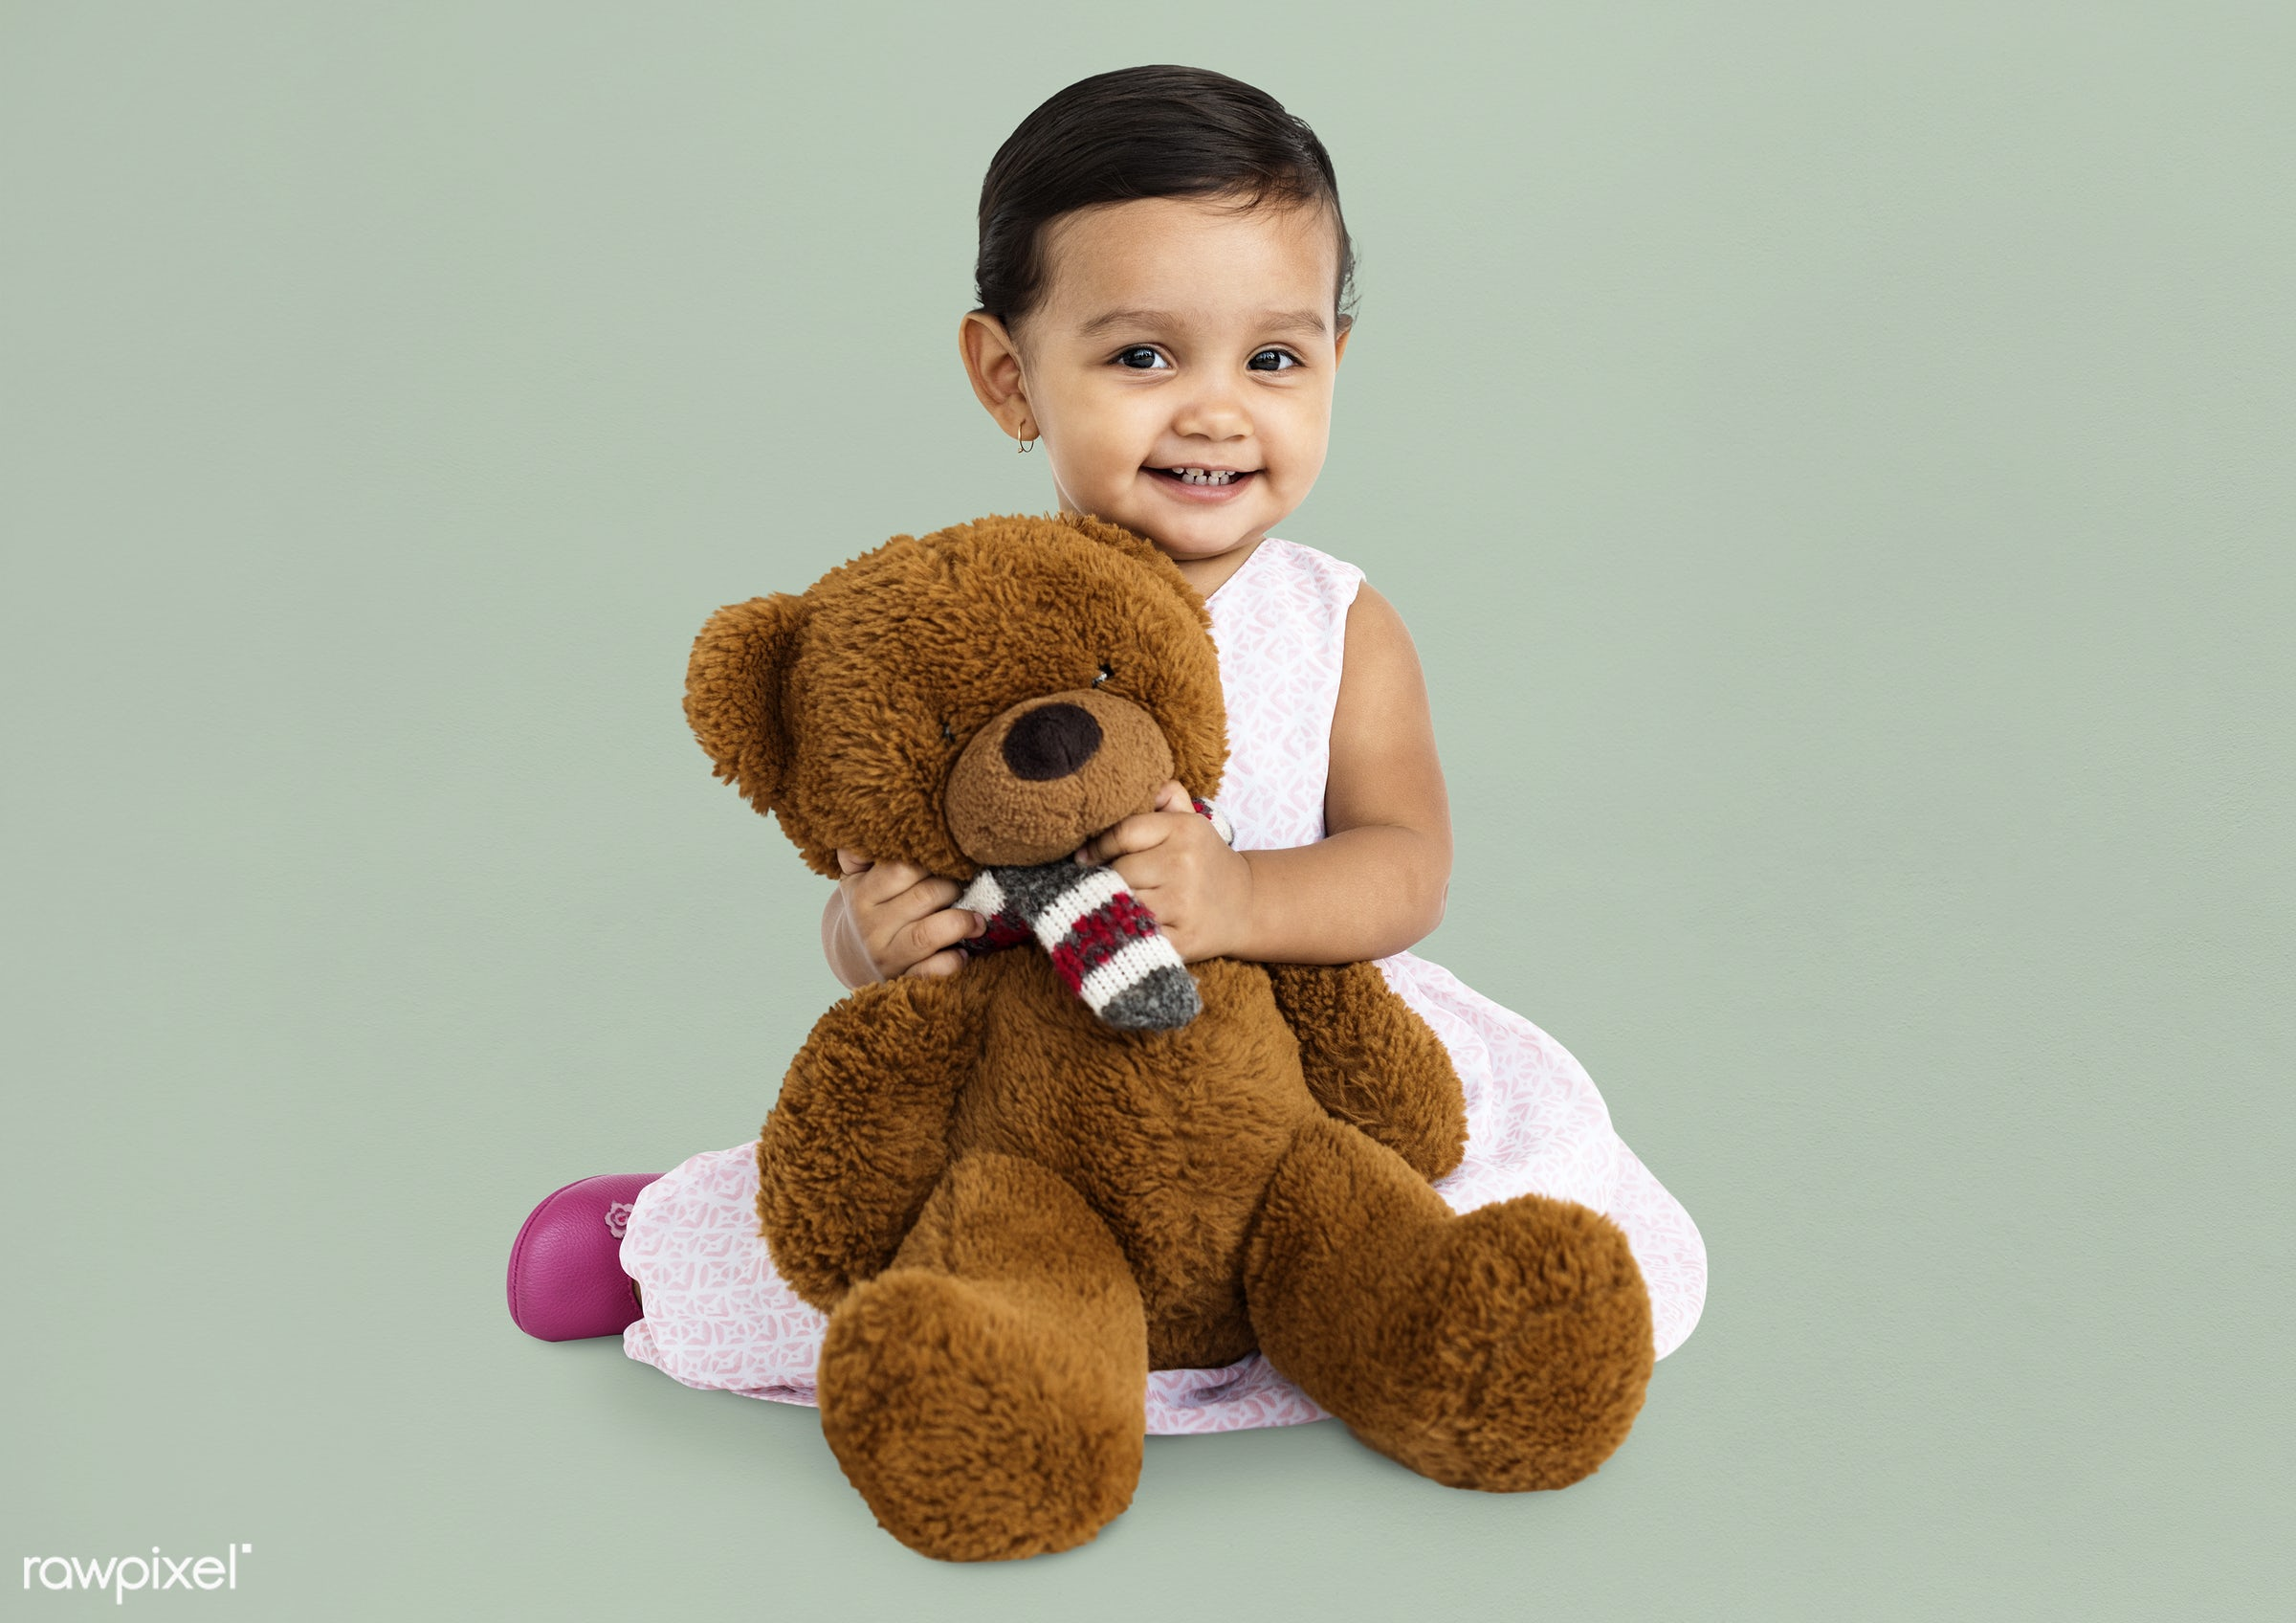 expression, studio, person, hug, soft toy, teddybear, little, cute, people, kid, child, girl, toy, joyous, happy, cheerful,...